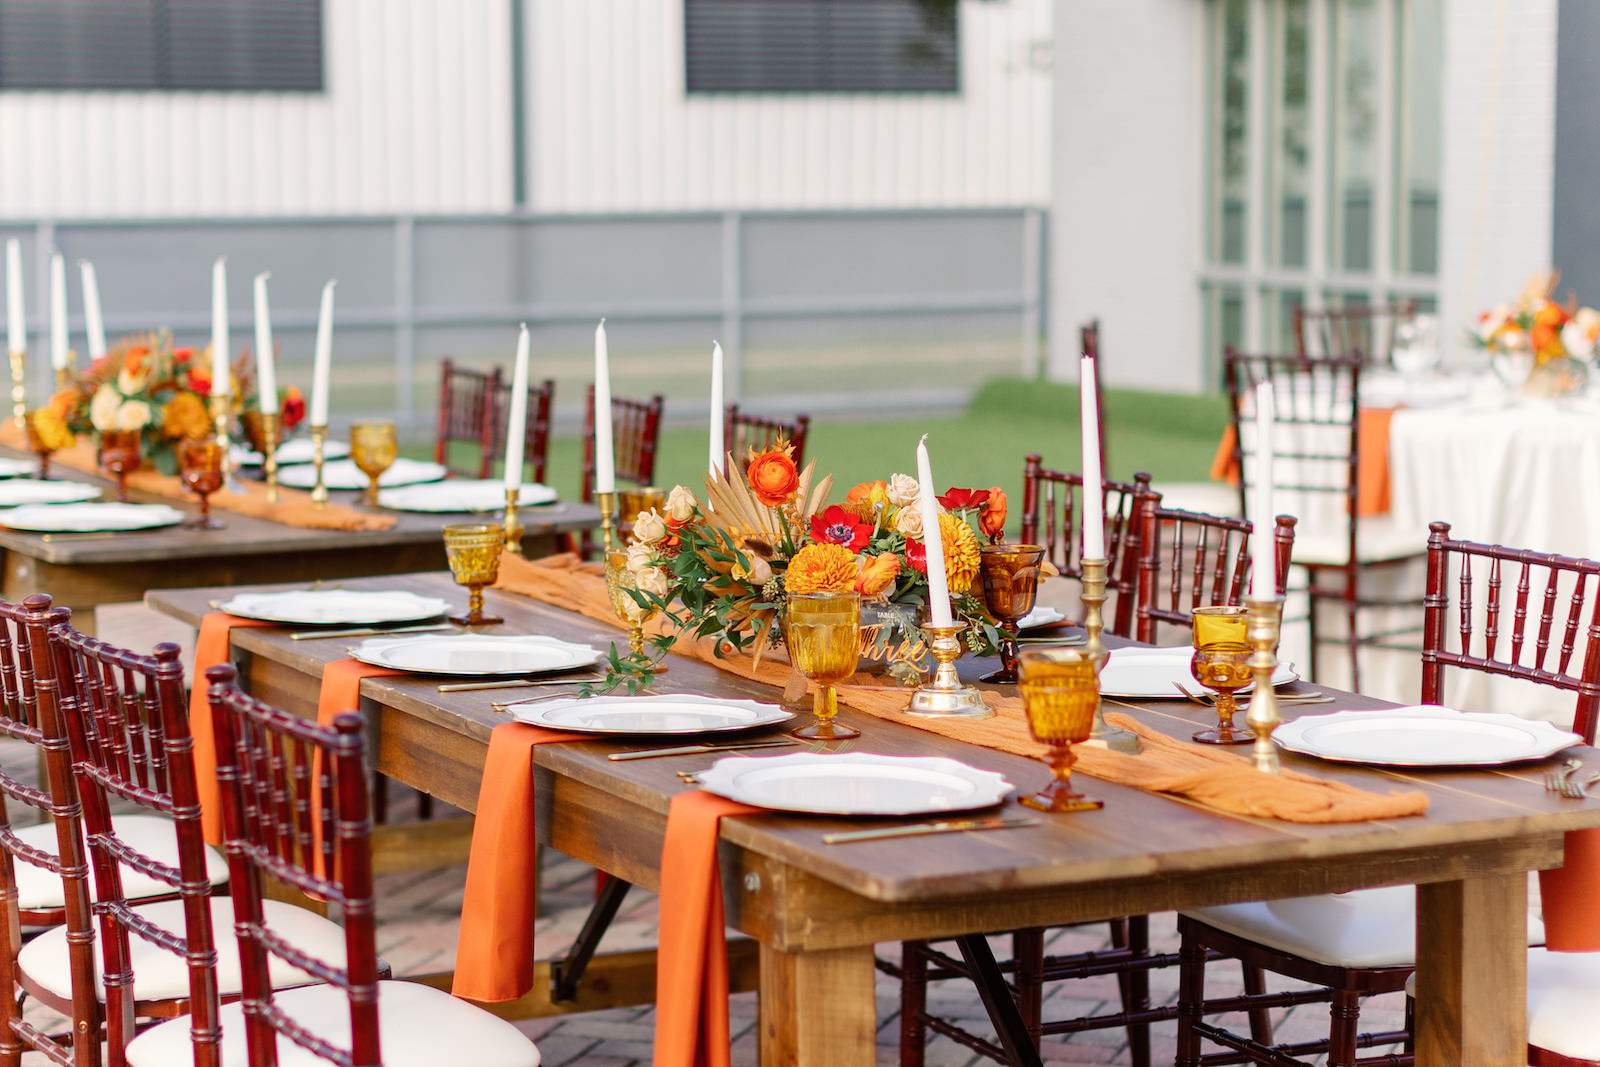 Modern Boho Inspired Florida Wedding Reception and Decor   Long Wooden Feasting Table with Burnt Orange Linen Table Runner with Long White Candles and Gold Candleholder, White Chargers, Orange, Golden Yellow and Red Floral Centerpiece   Tampa Bay Wedding Planner Coastal Coordinating